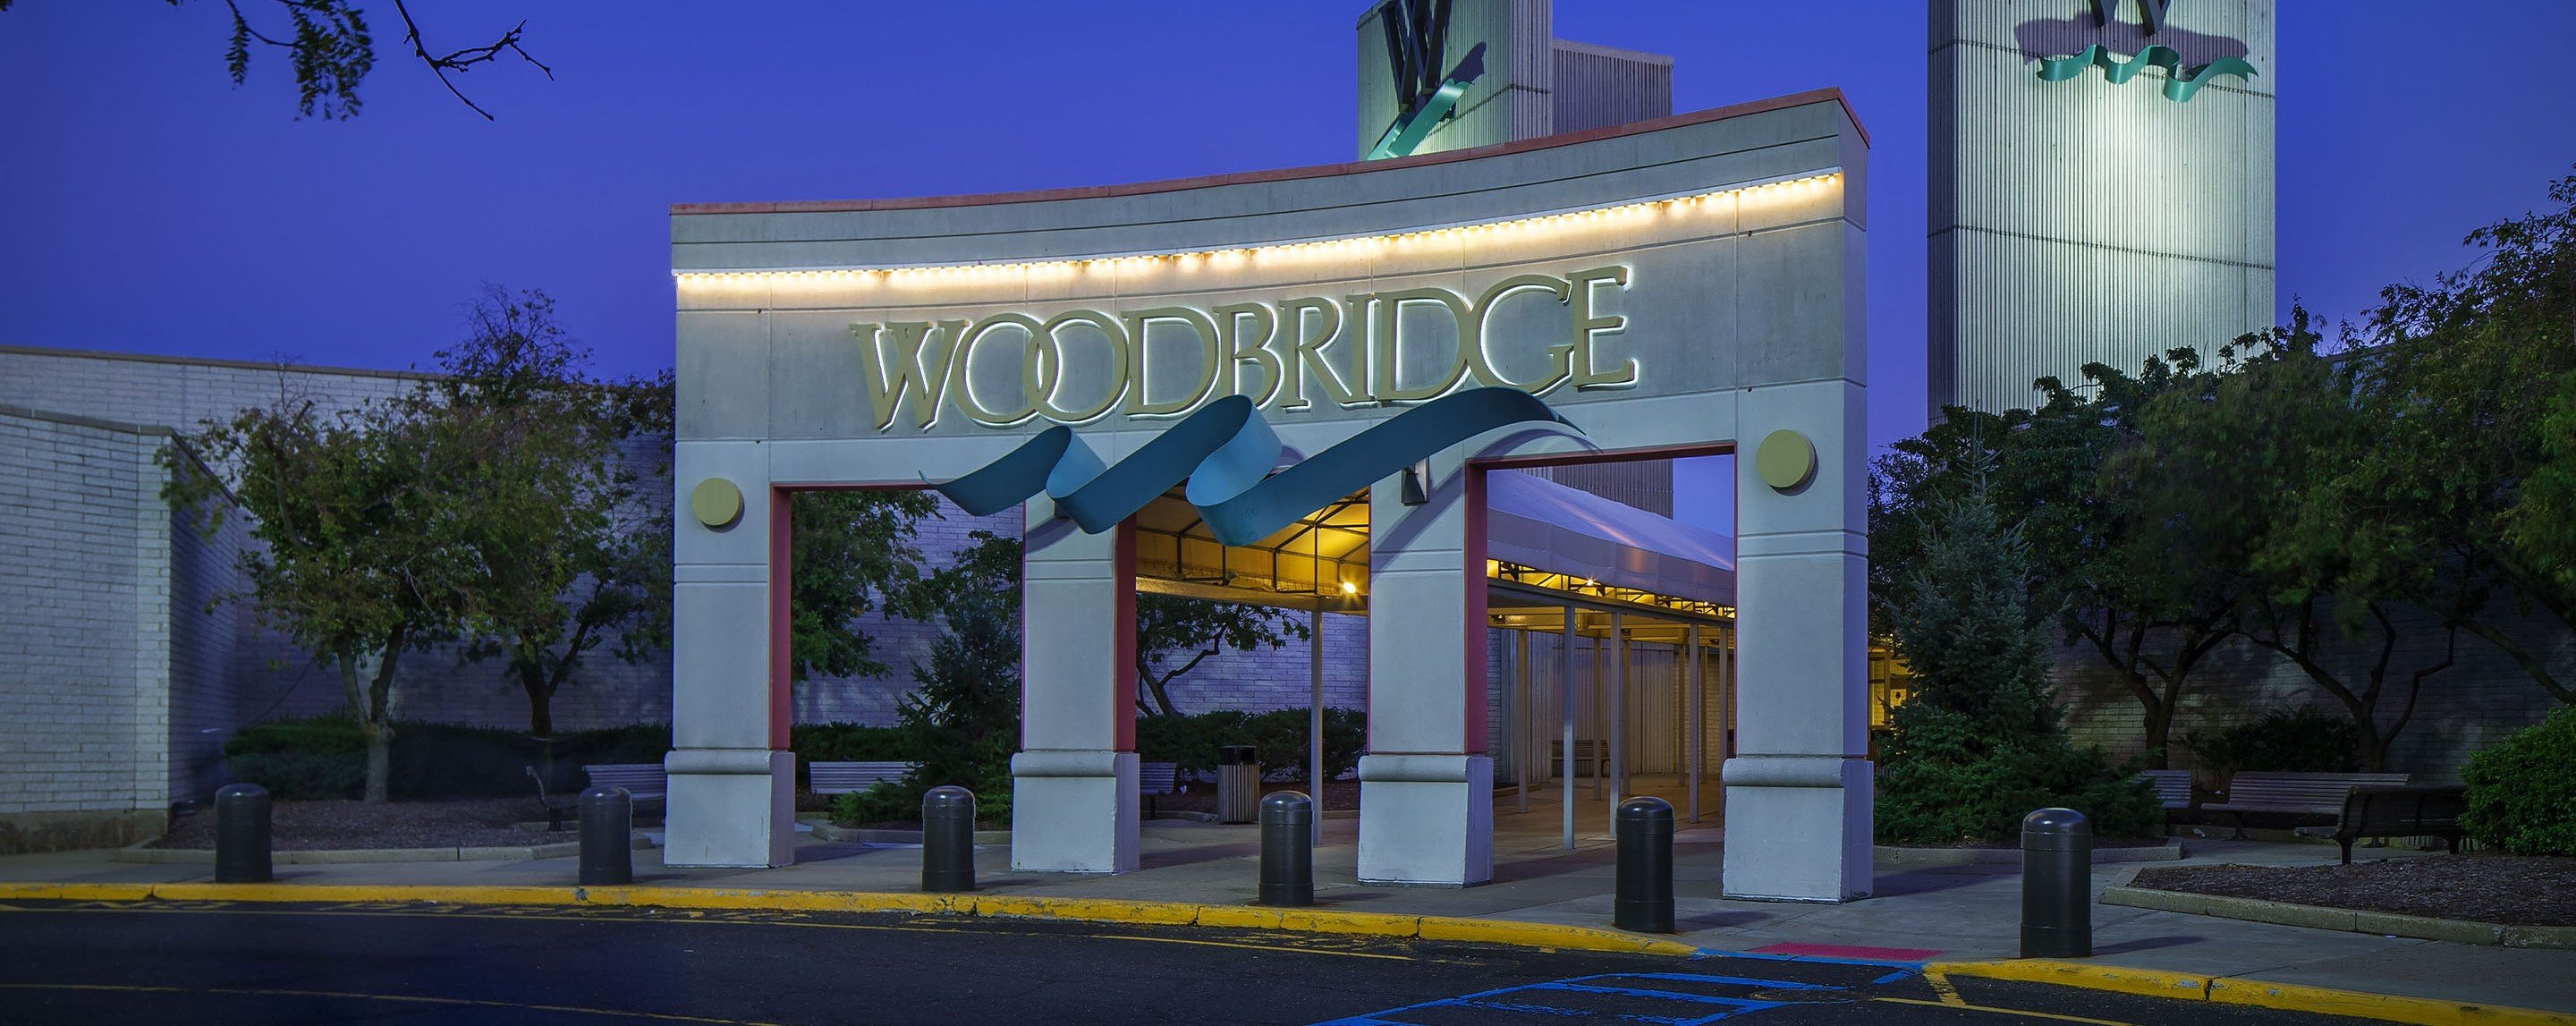 An ornate archway advertises the entrance for the Woodbridge Mall. A blue ribbon decoration underlin